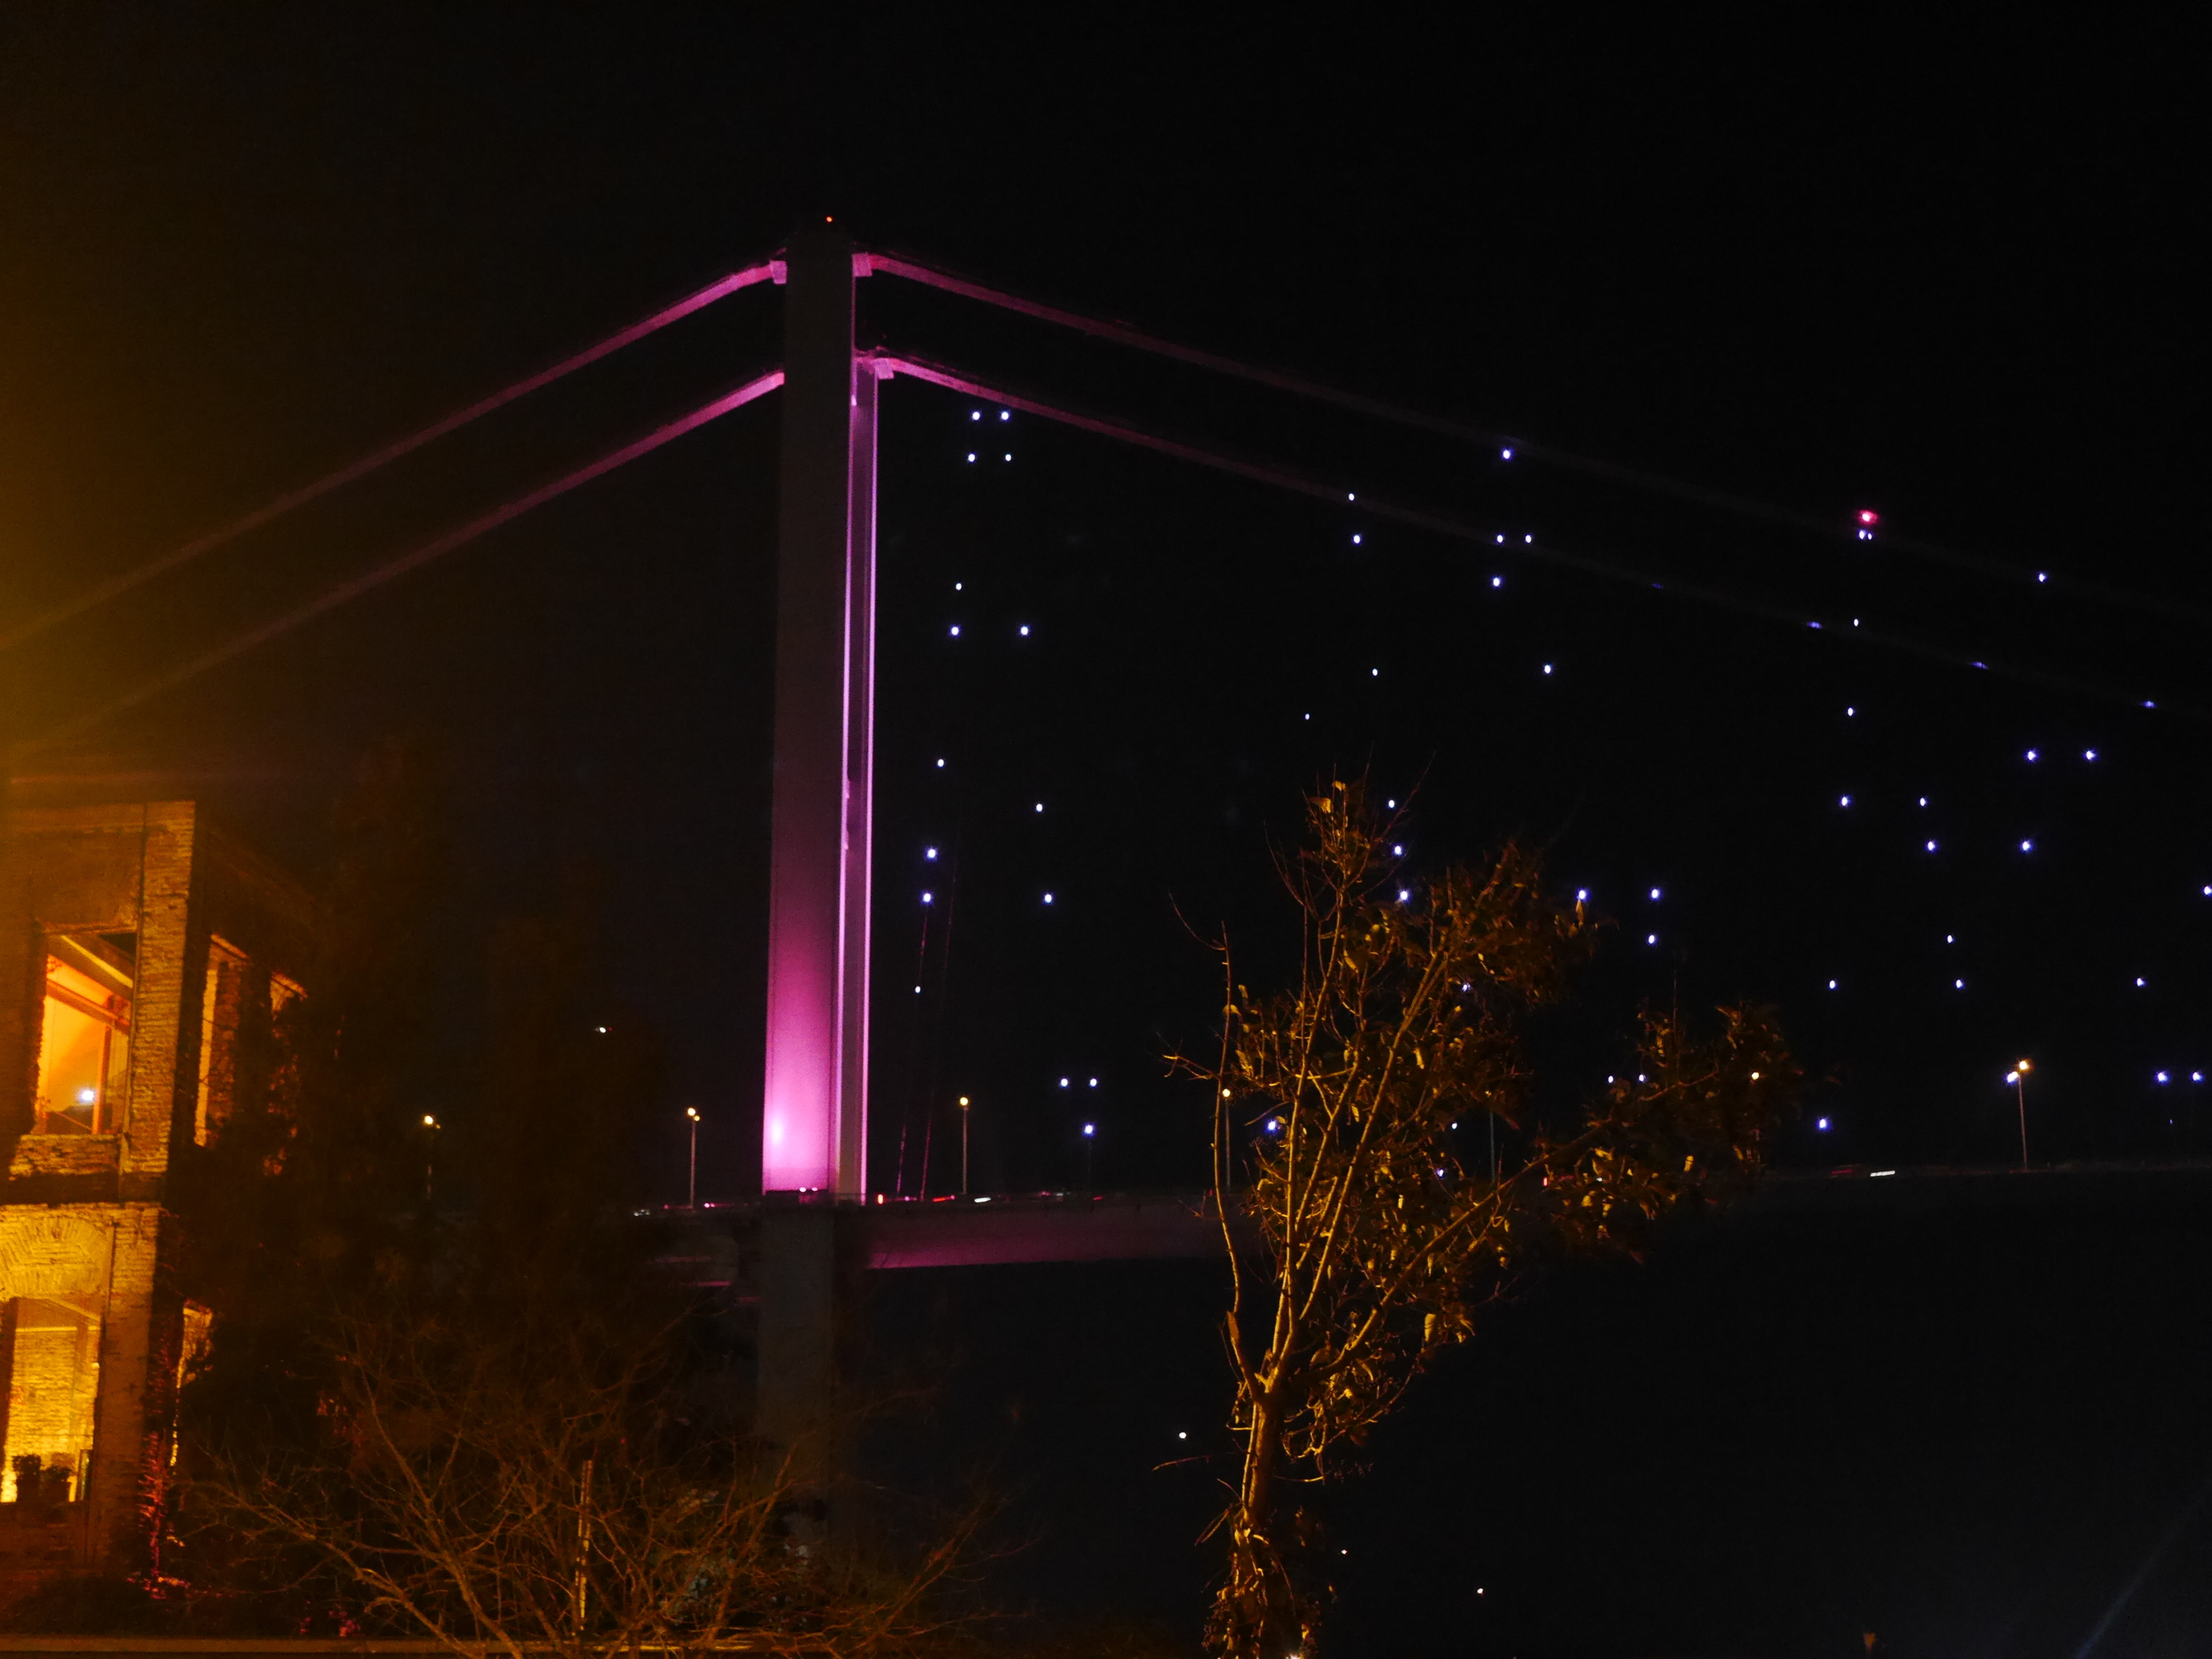 The Bosphorus Bridge (pleasantly lit up) at night.